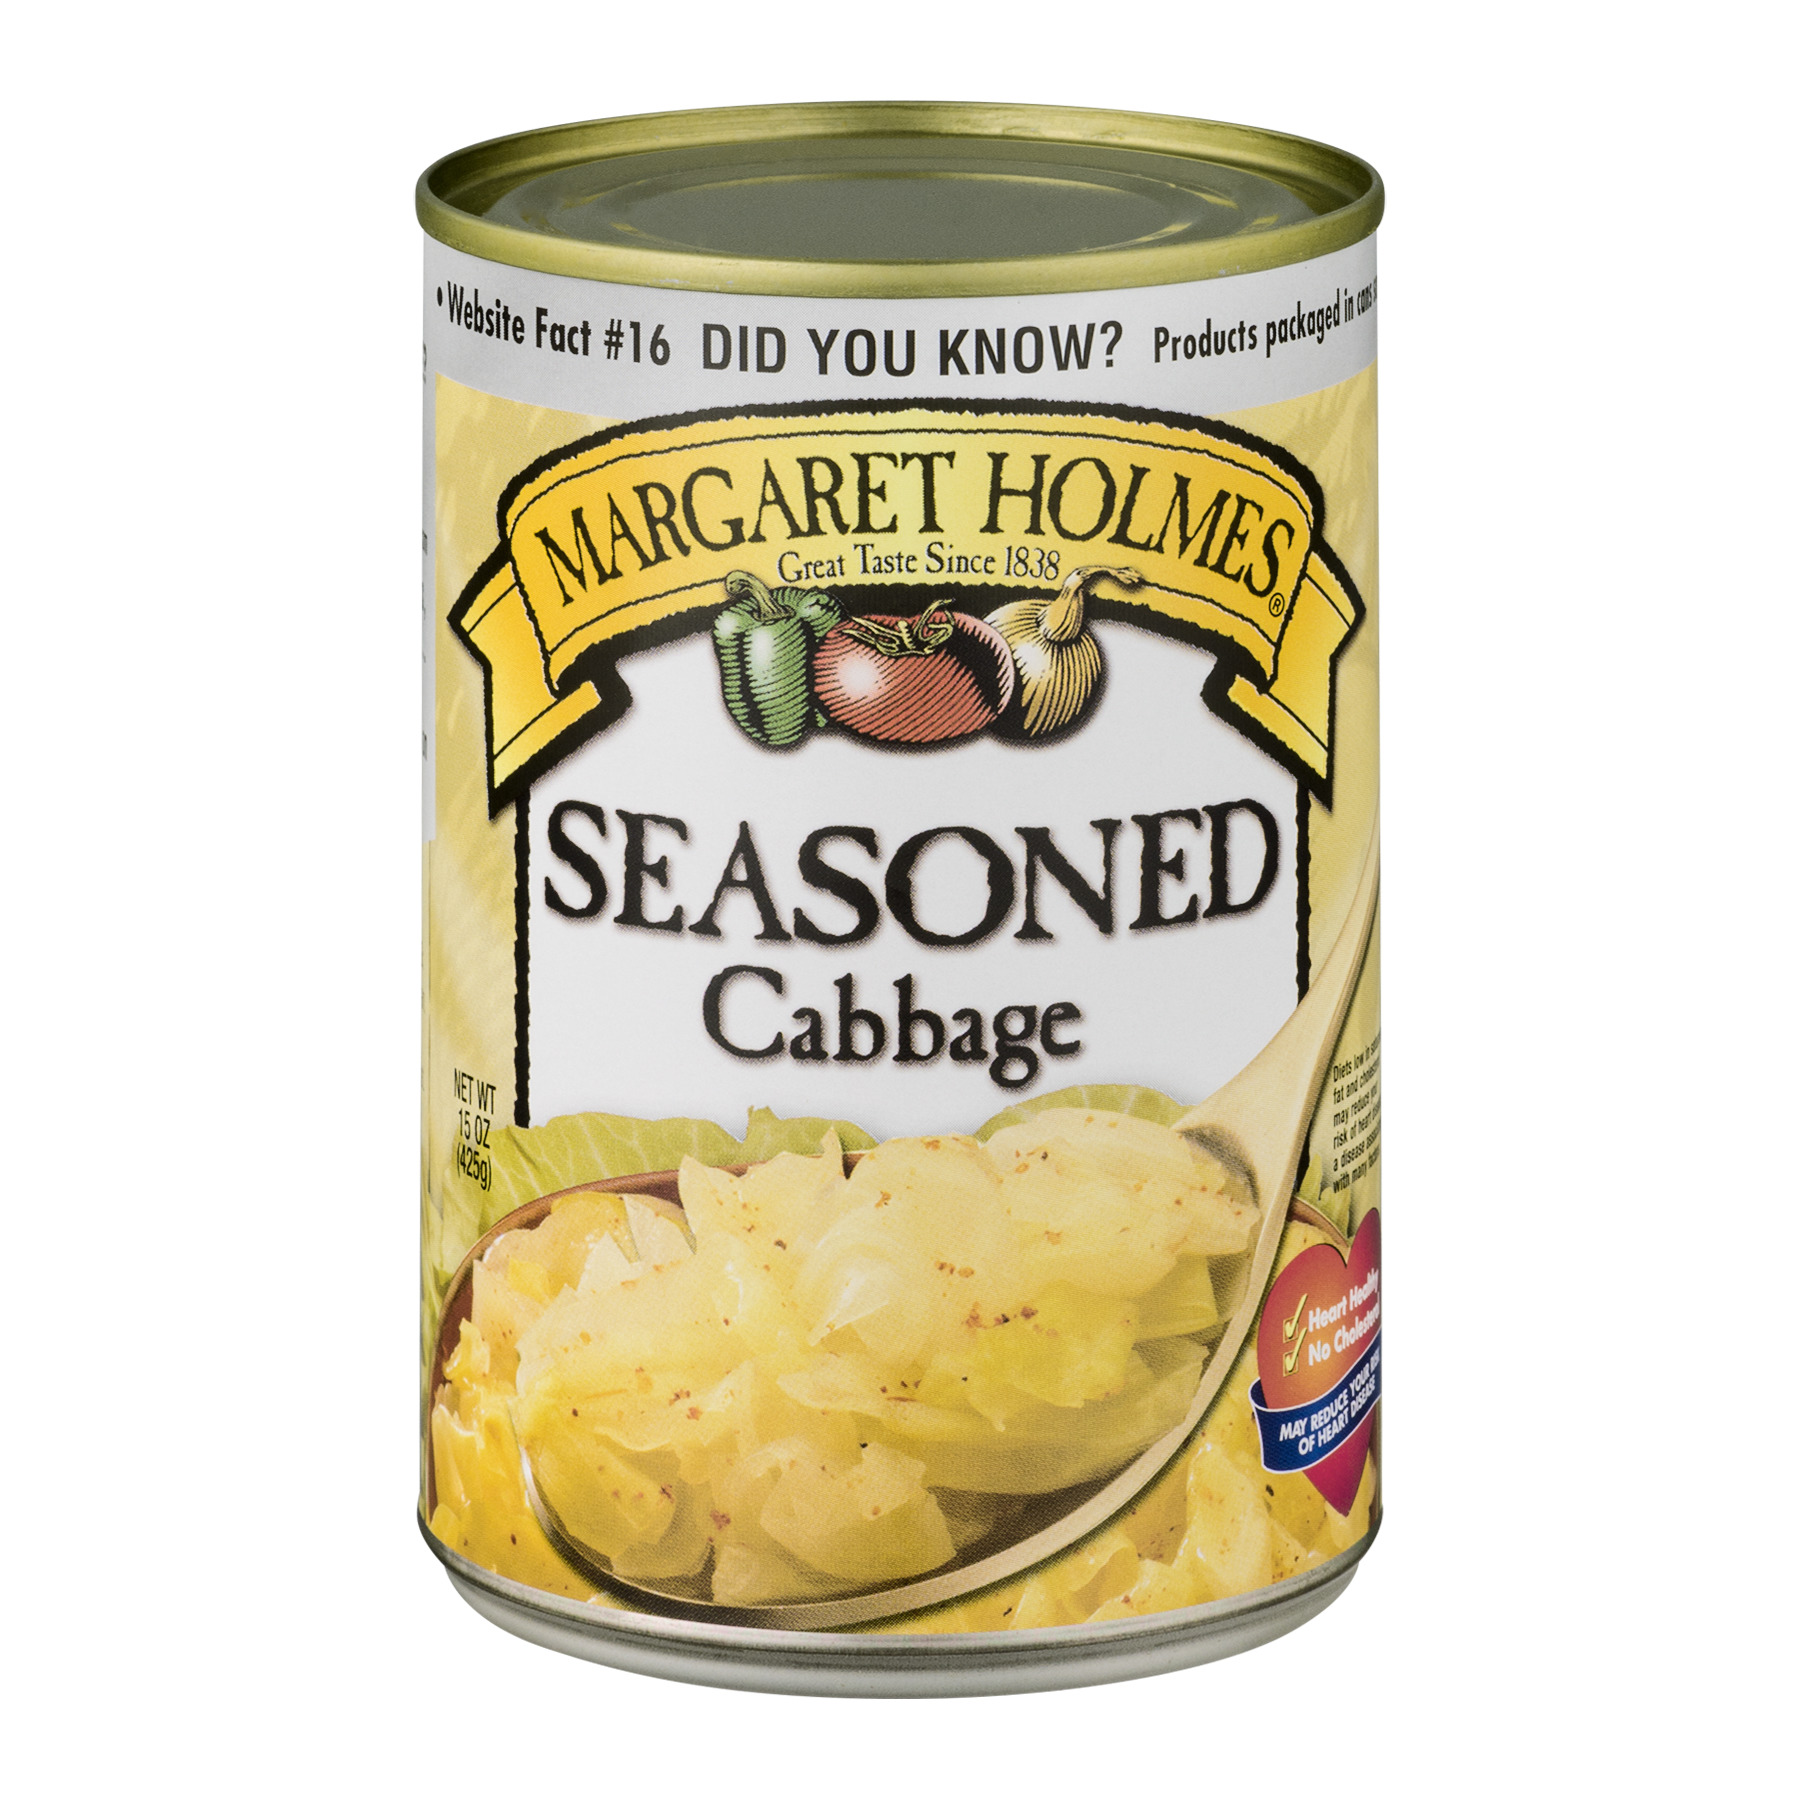 Margaret Holmes Seasoned Cabbage, 15 Oz